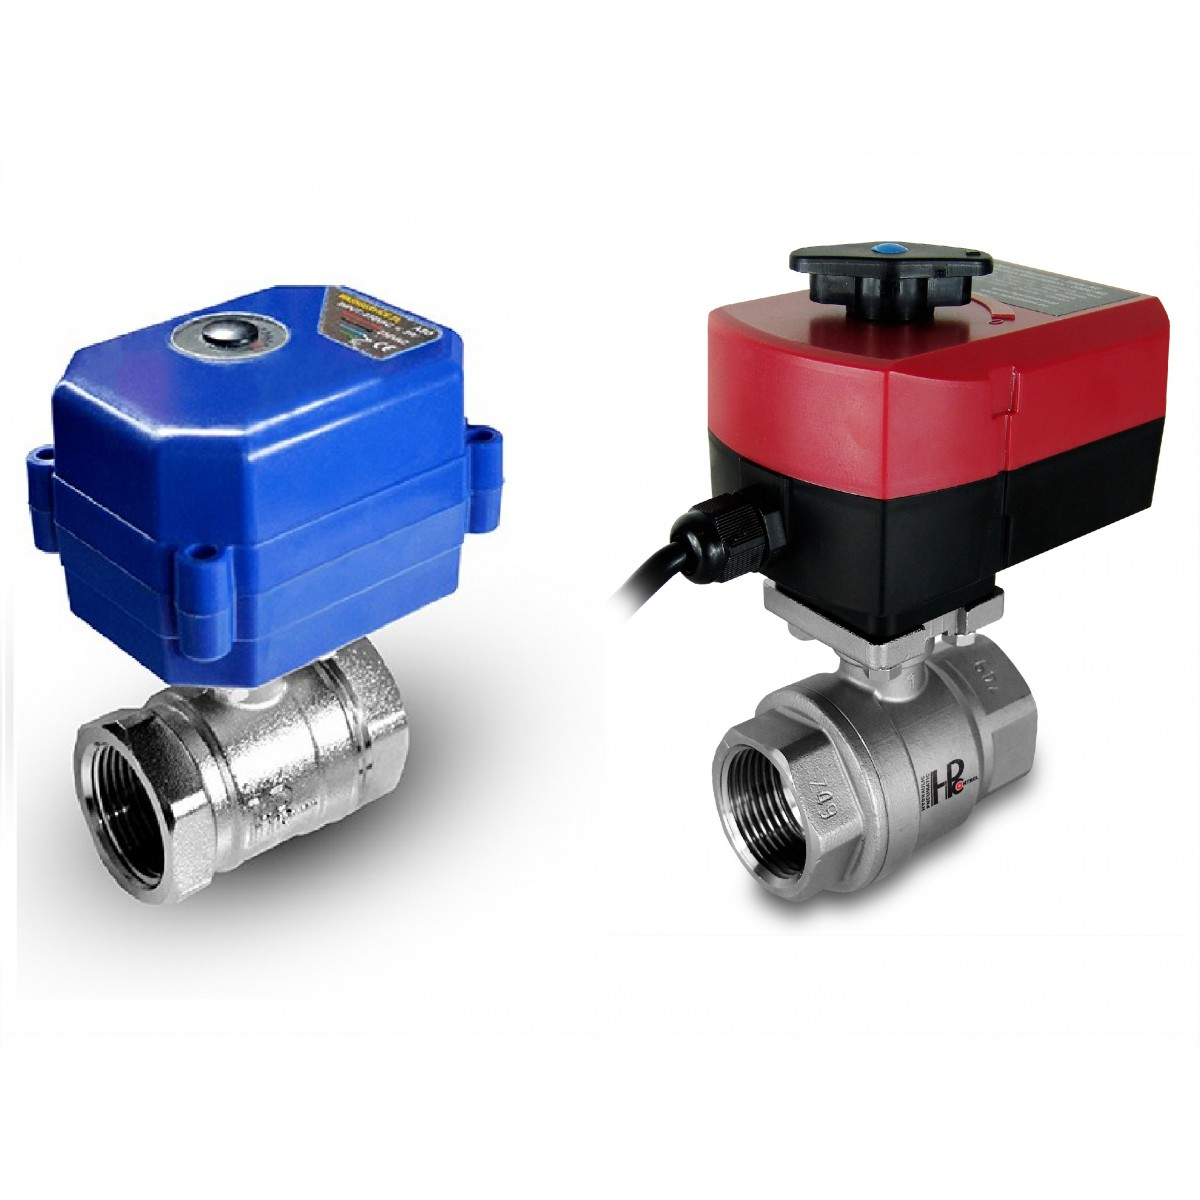 Ball valve 1/2 inch stainless steel with electric actuator A80 or A82